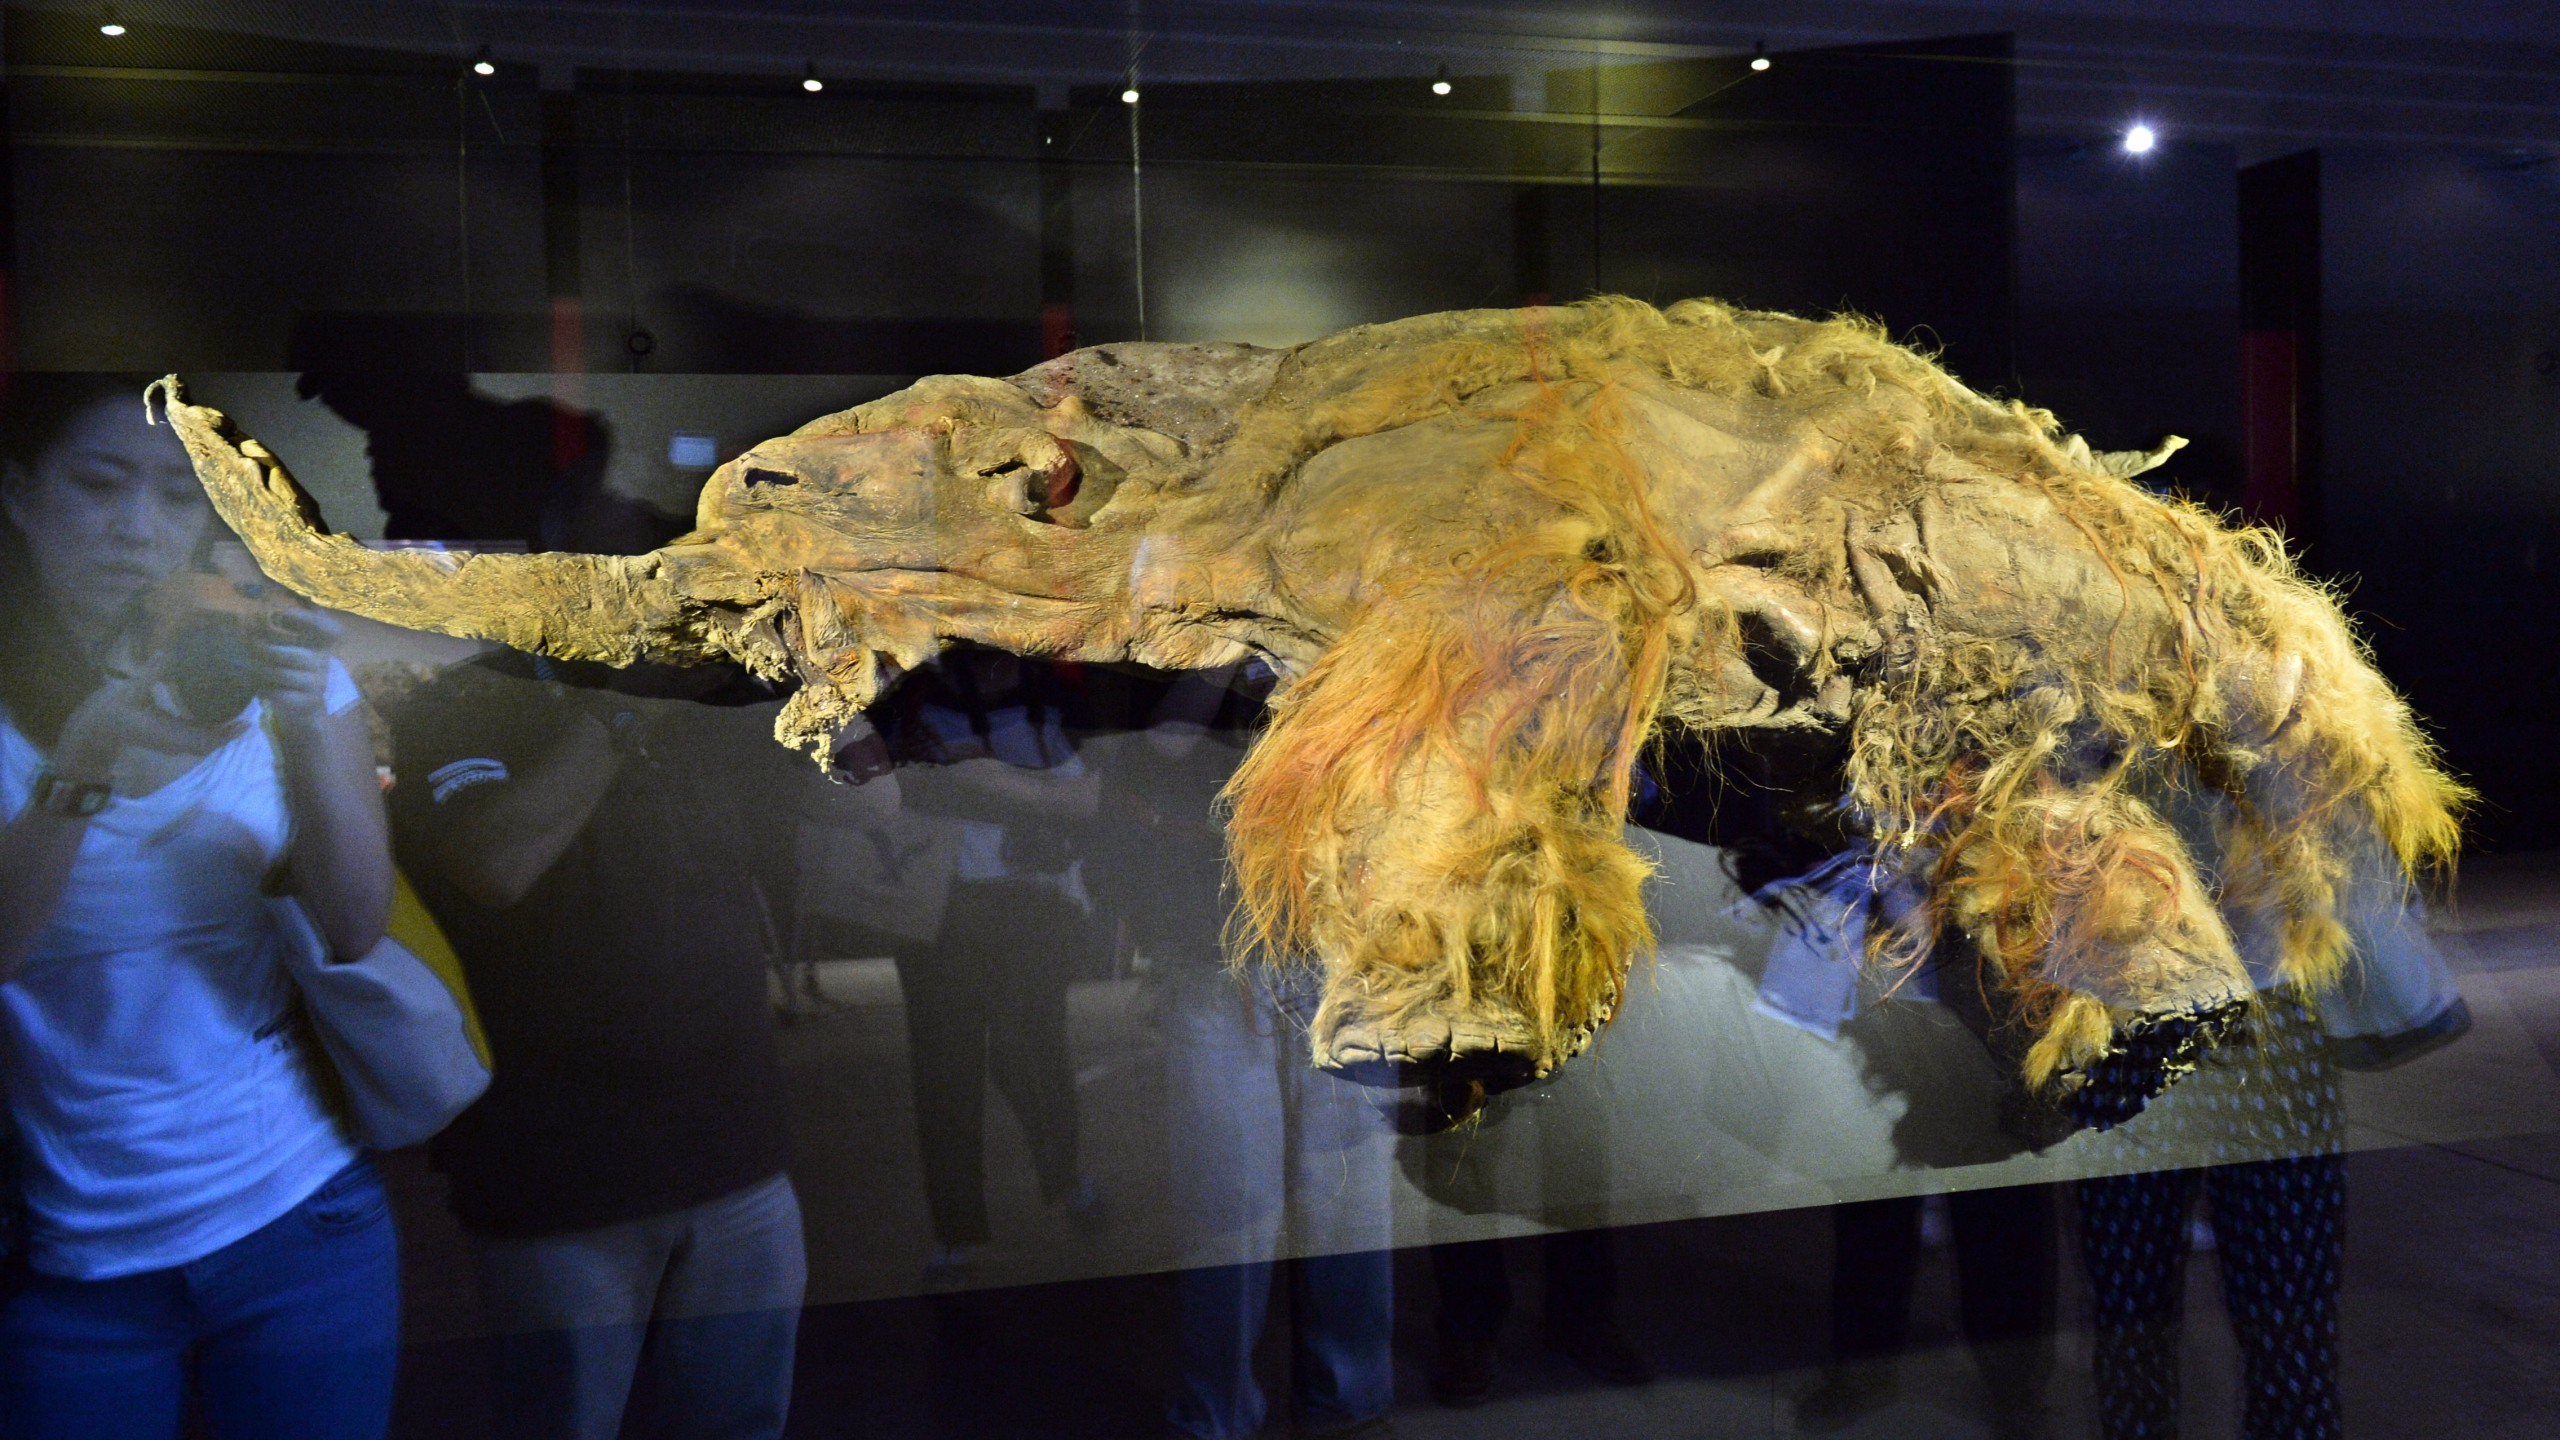 The frozen carcass of a 39,000-year-old female woolly mammoth named Yuka from the Siberian permafrost is displayed for an exhibition in Yokohama, suburban Tokyo on July 12, 2013 at a press preview before the opening. (Credit: KAZUHIRO NOGI/AFP/Getty Images)